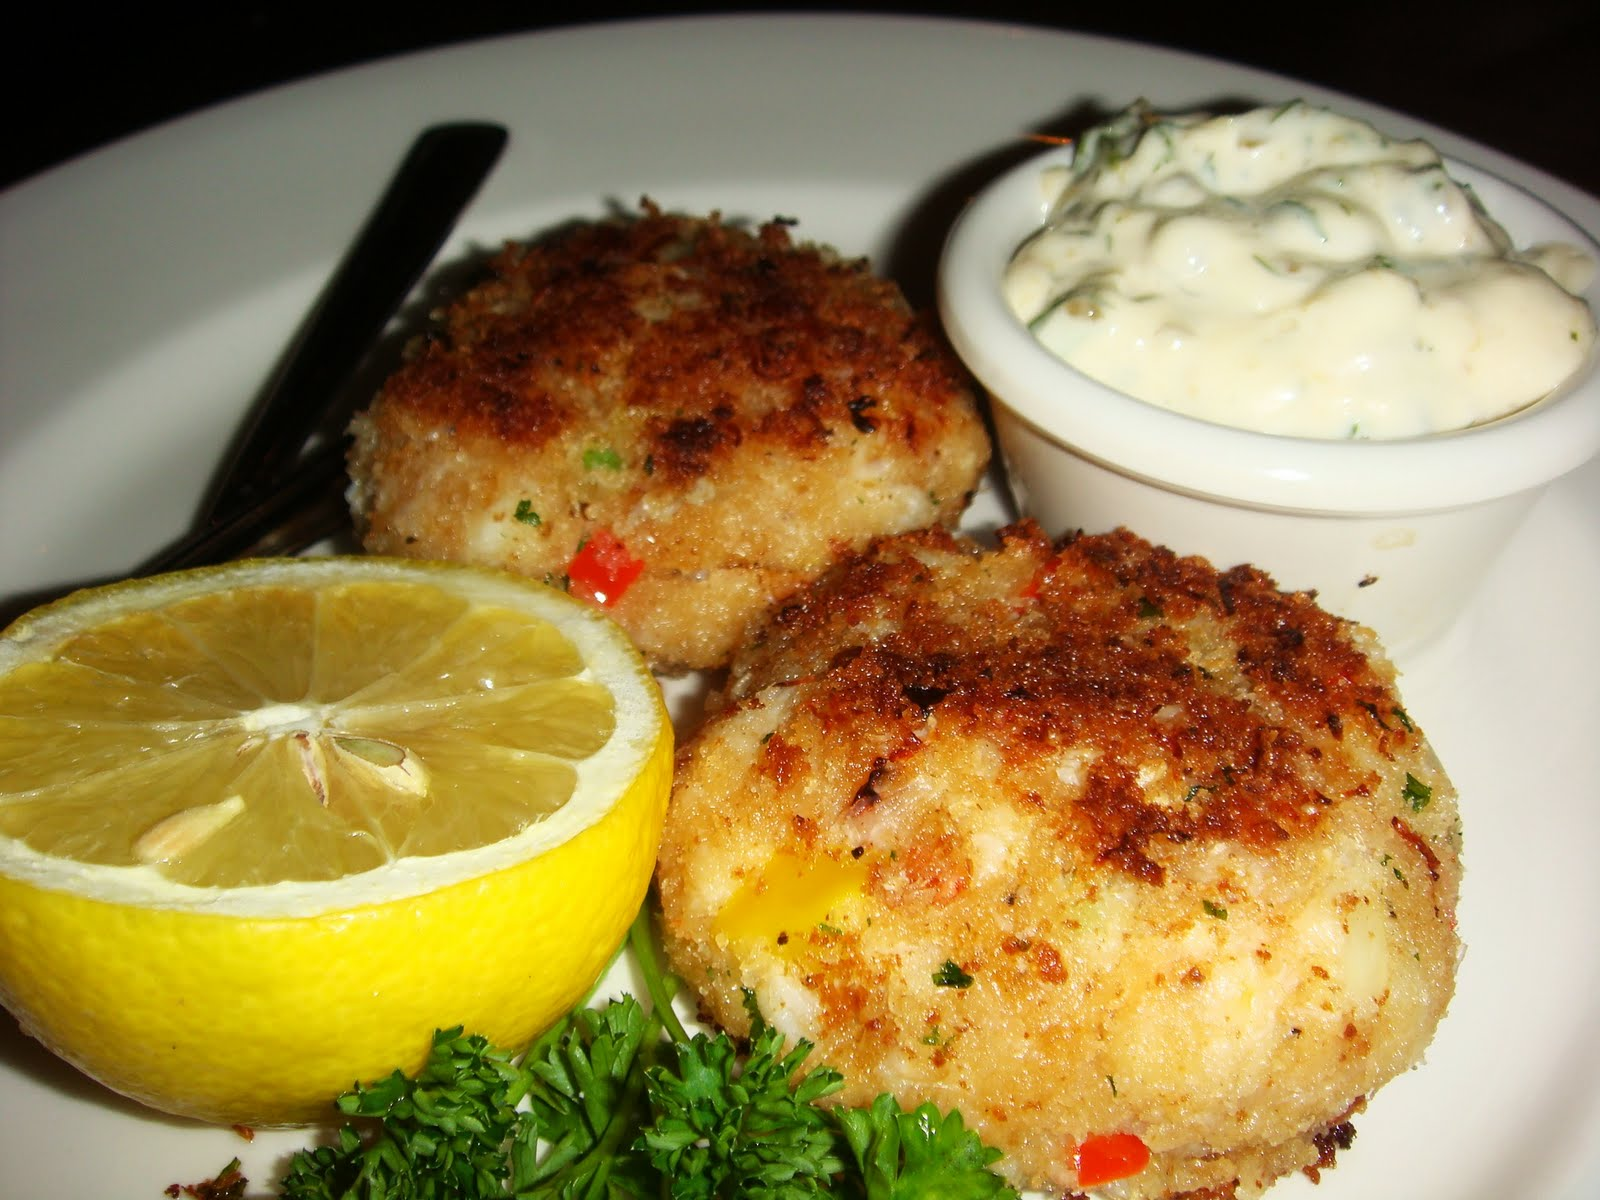 The Keg Crab Cakes